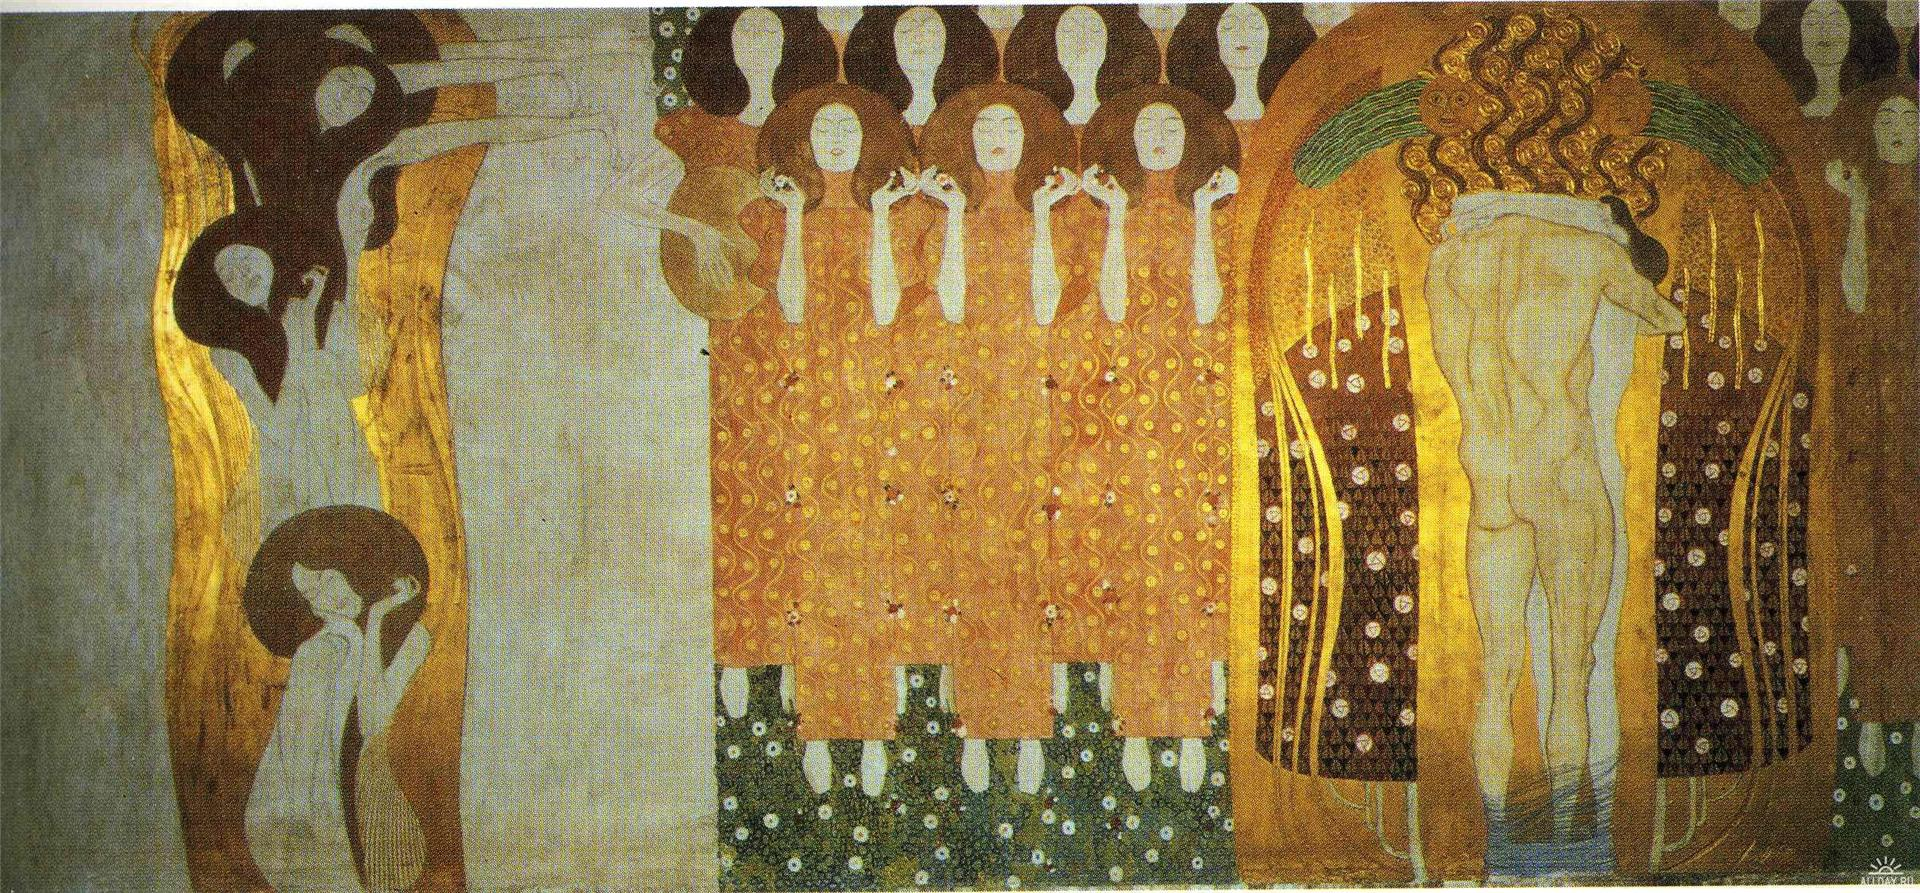 The-Beethoven-Frieze-The-Longing-for-Happiness-Finds-Repose-in-Poetry-Gustav-Klimt-oil-painting